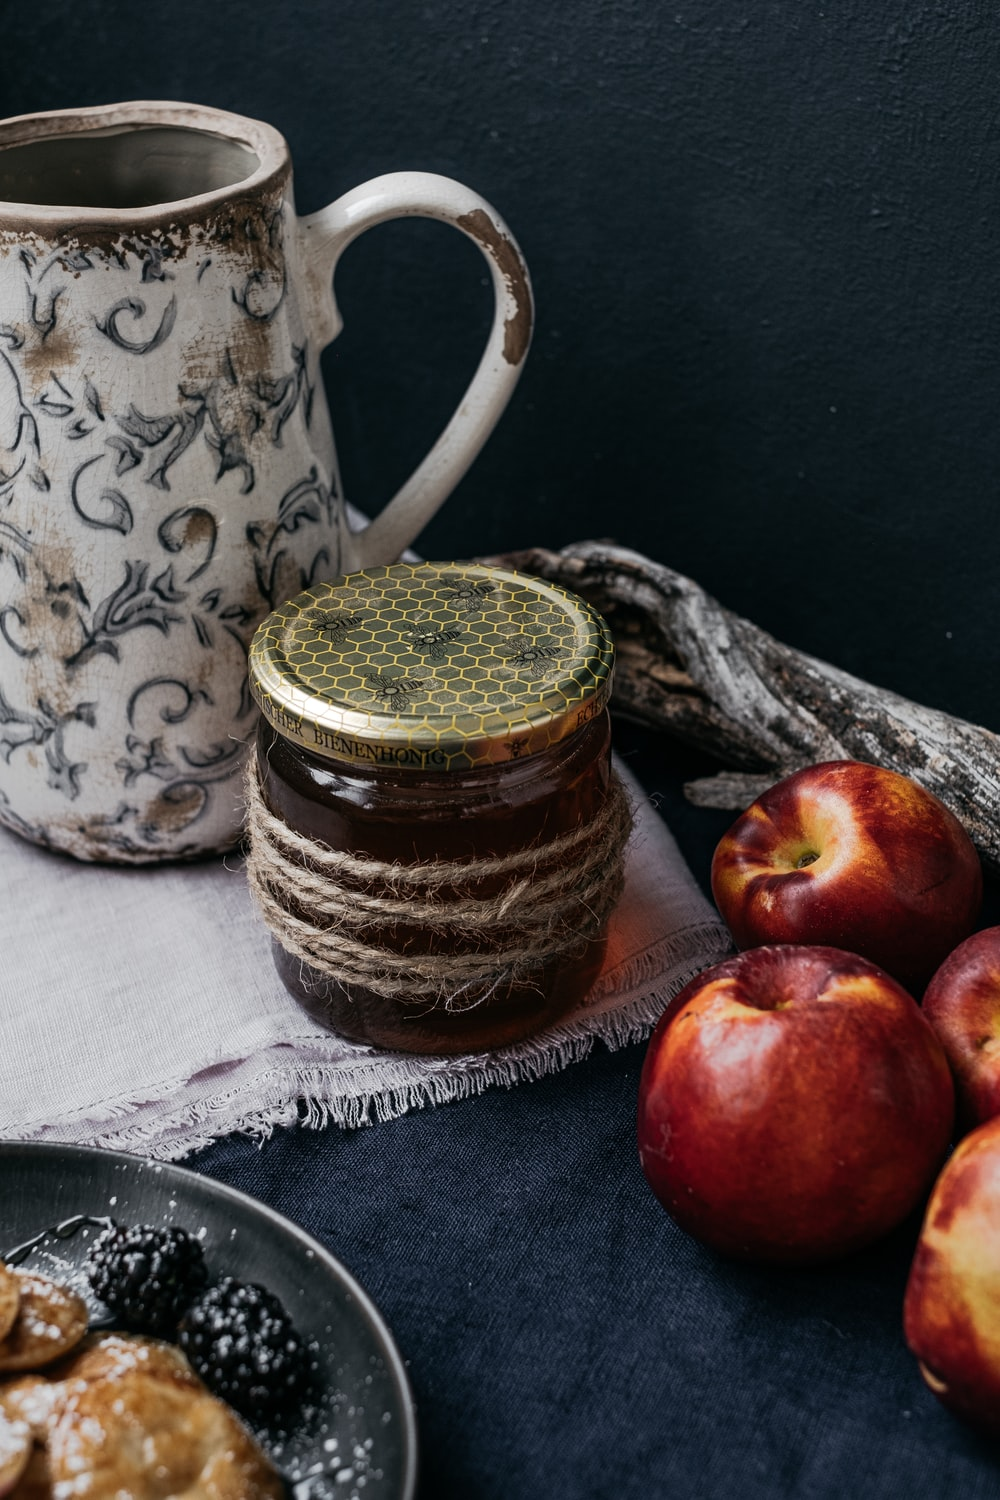 red apples beside brown and white ceramic jar